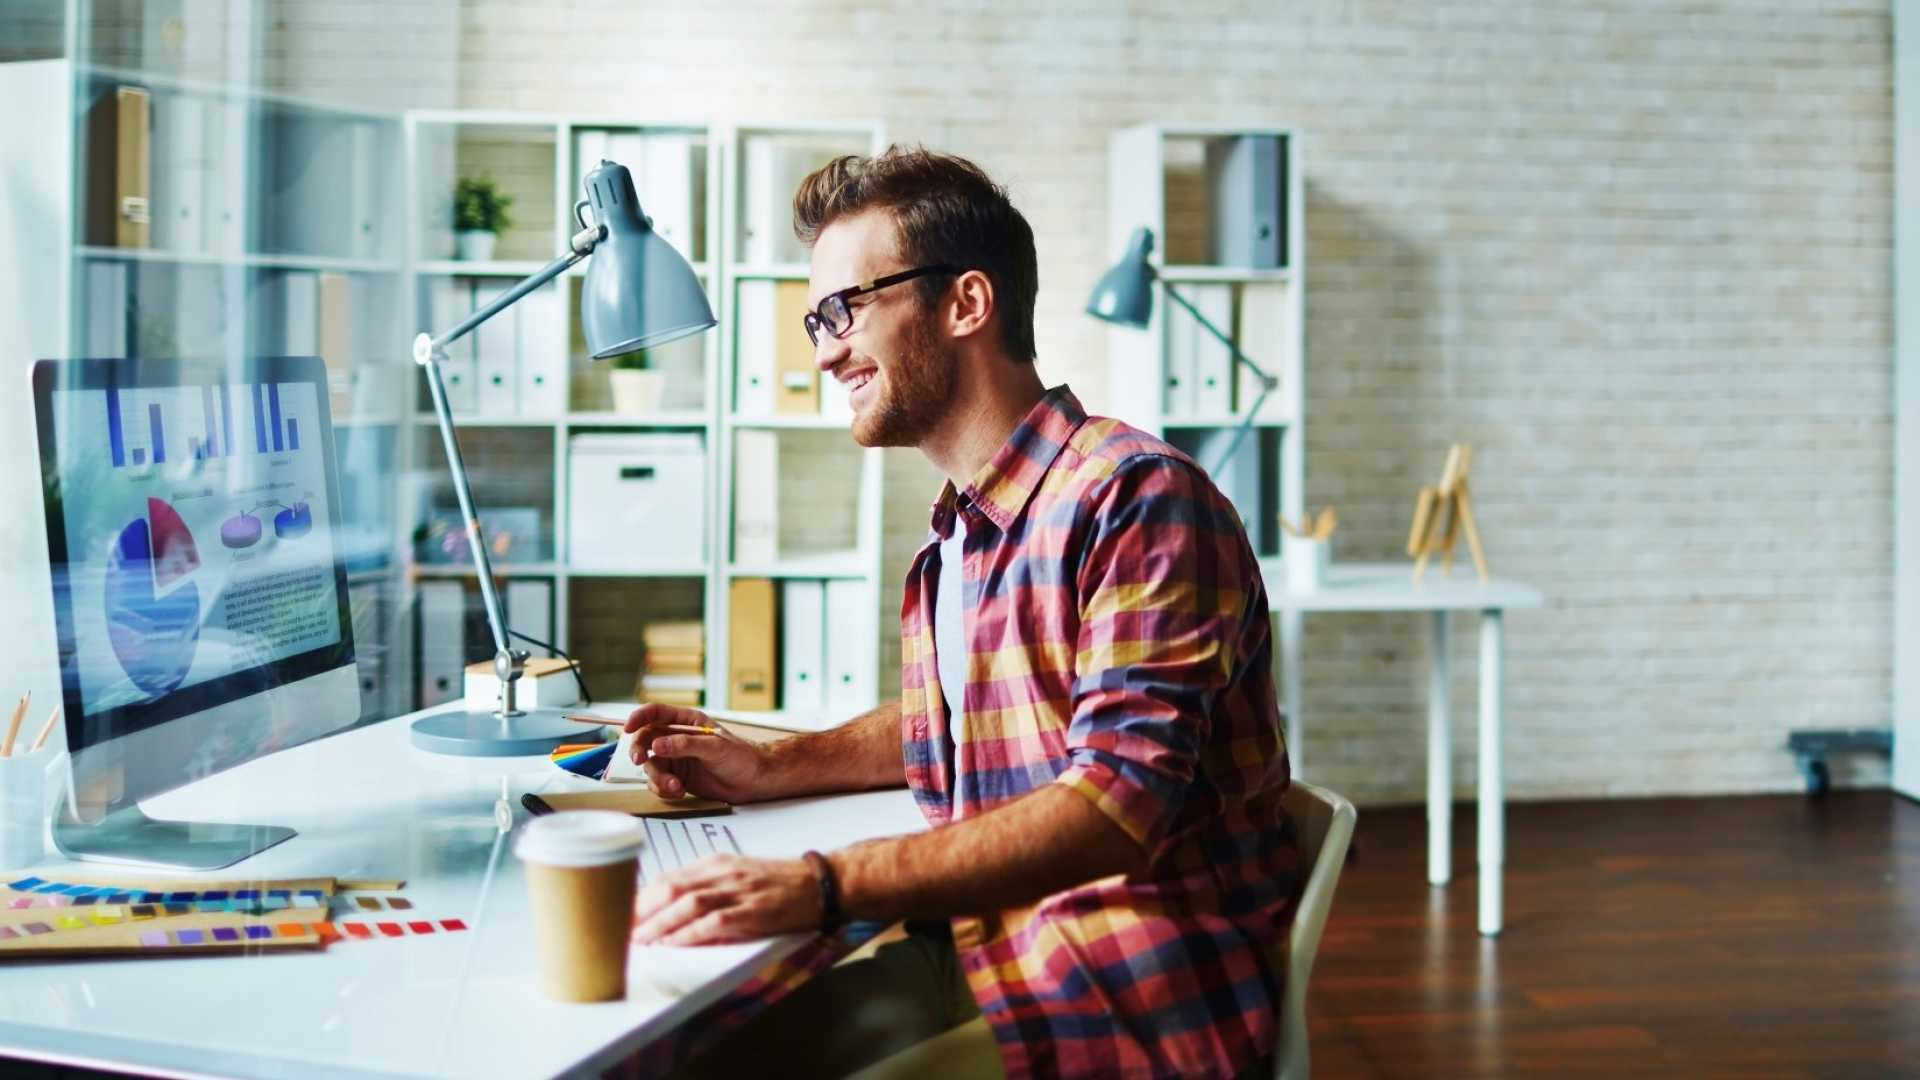 Want to Be More Productive? These 6 Simple Workspace Changes Will Boost Your Focus